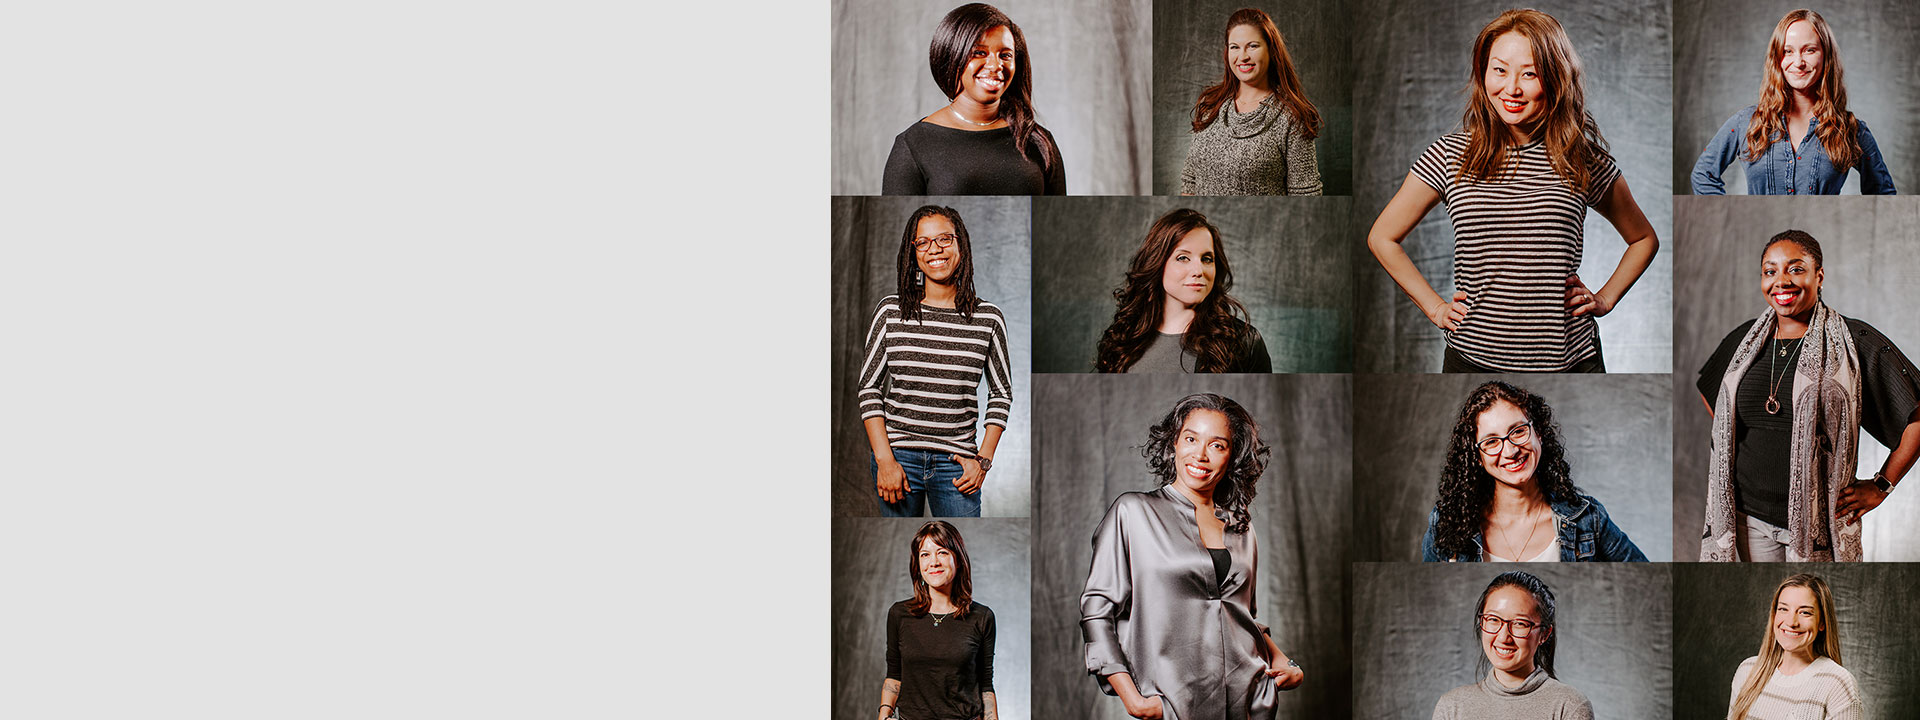 Mosaic of individual portraits of women who work at Xbox